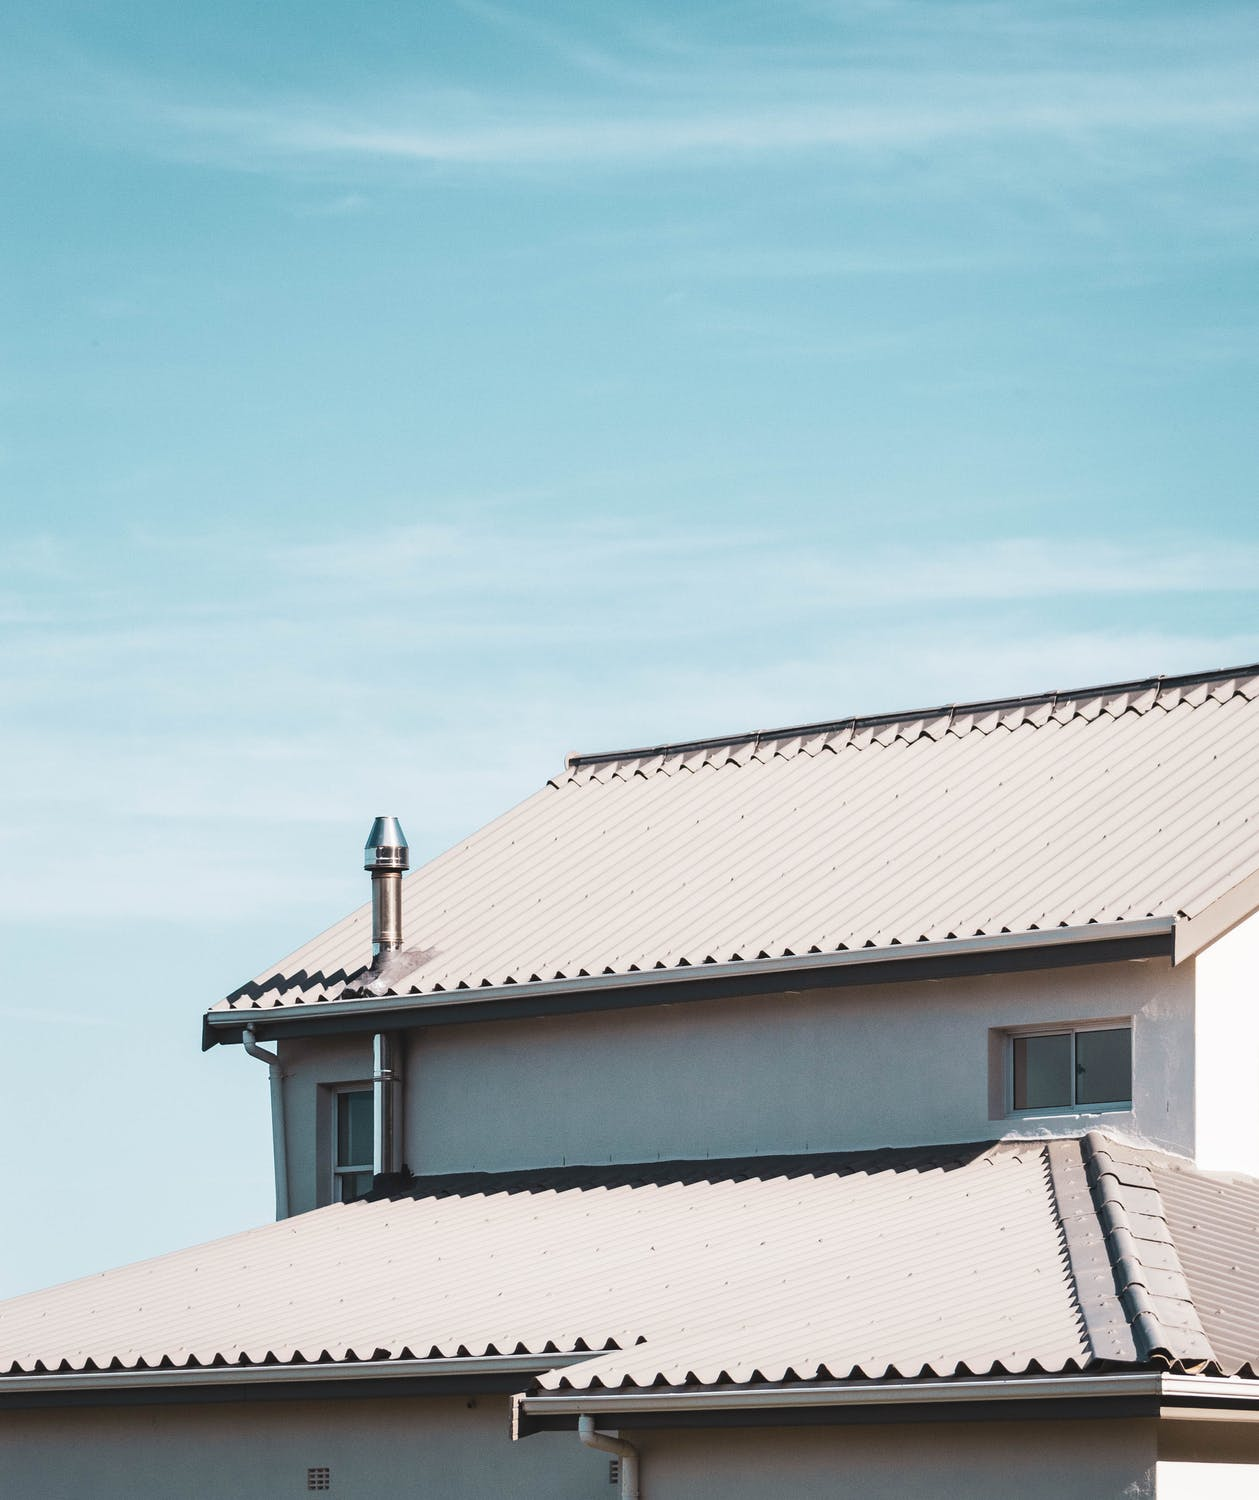 How You and Your Family Can Avoid A Roof Replacement